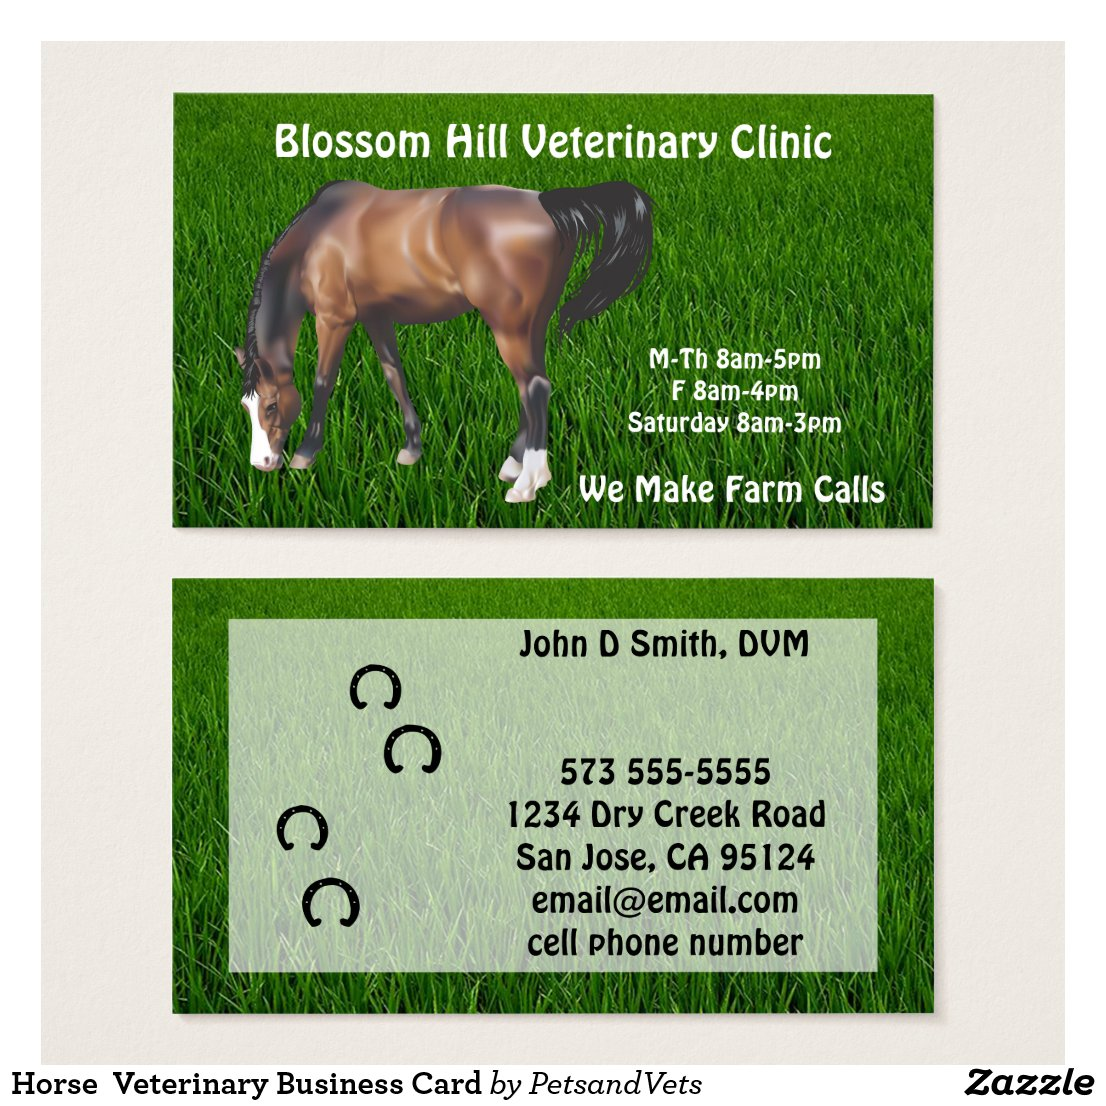 Horse Veterinary Business Card